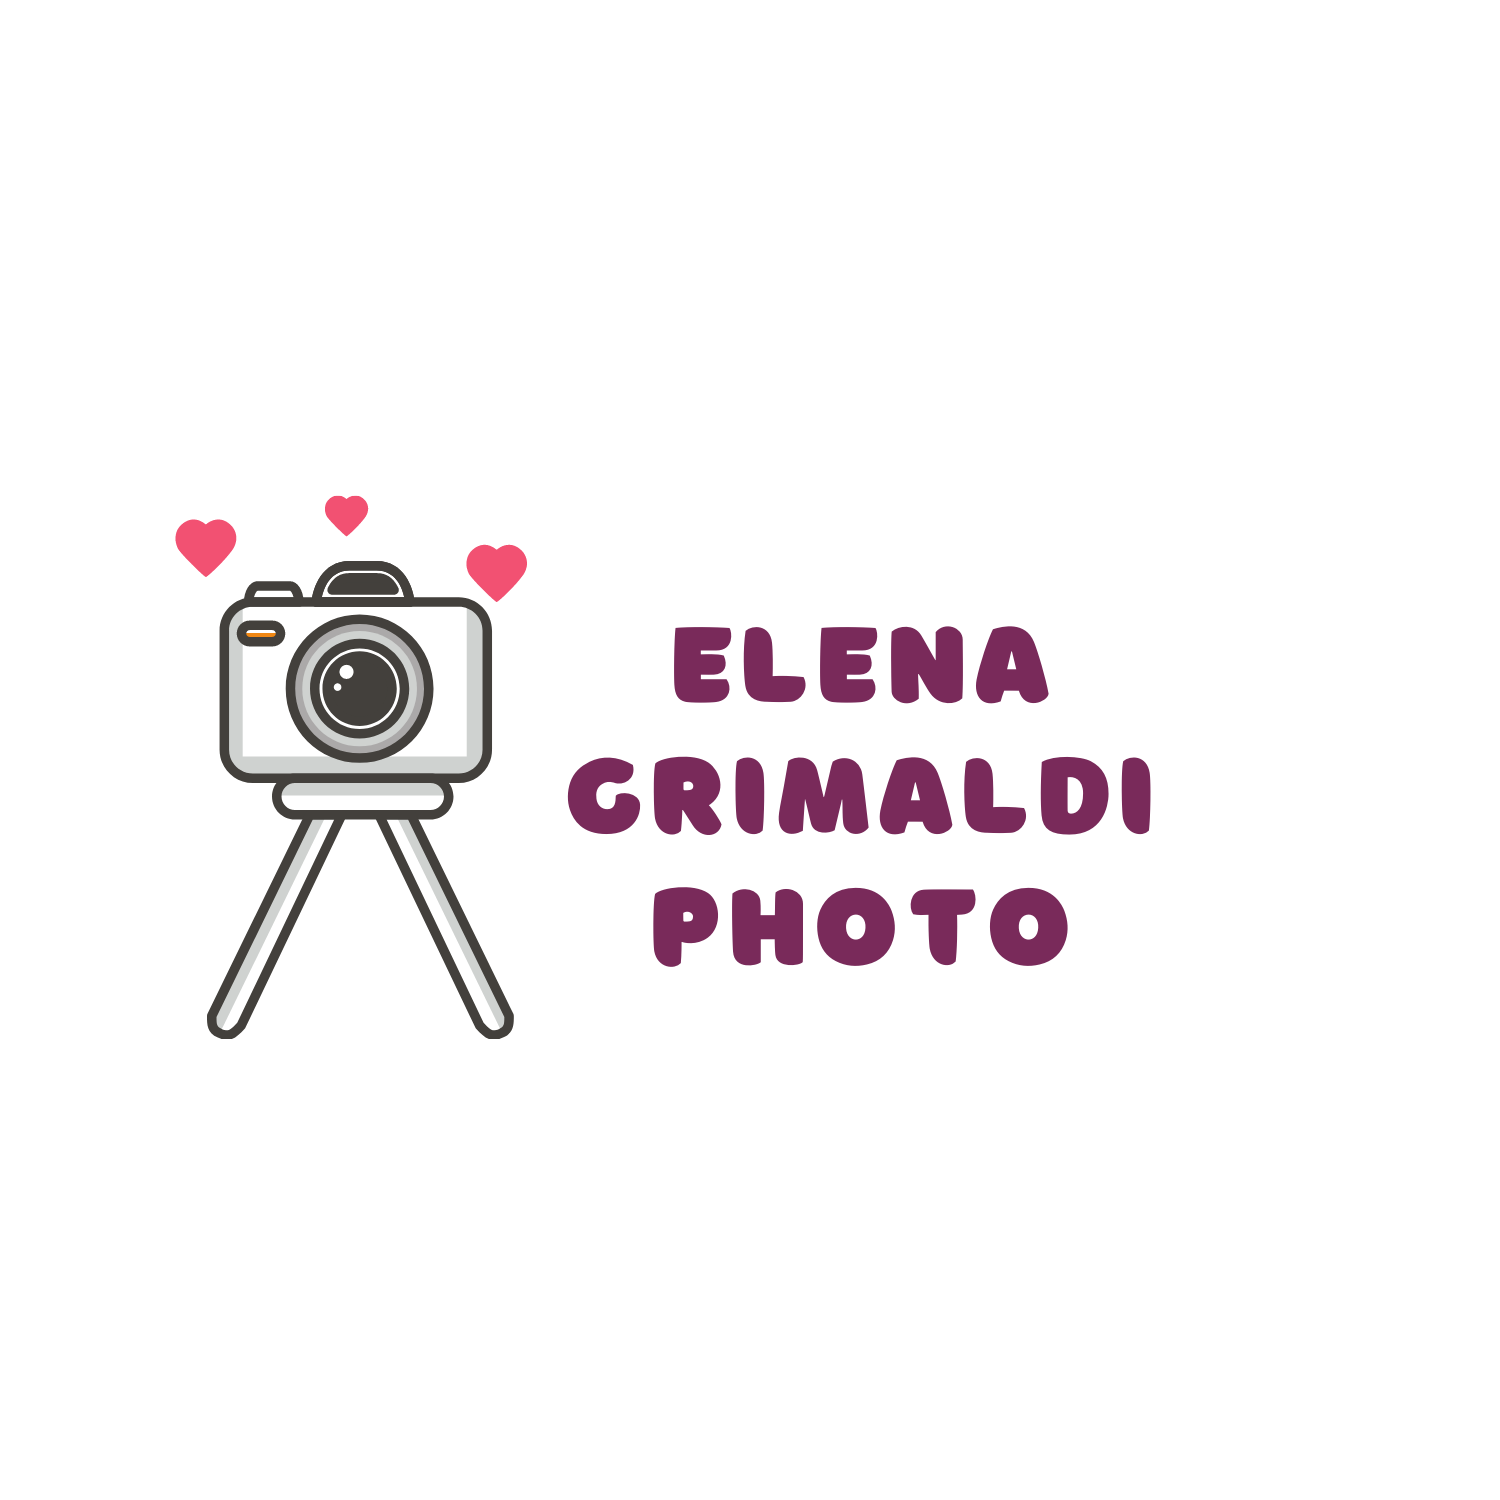 Elena Grimaldi Photo